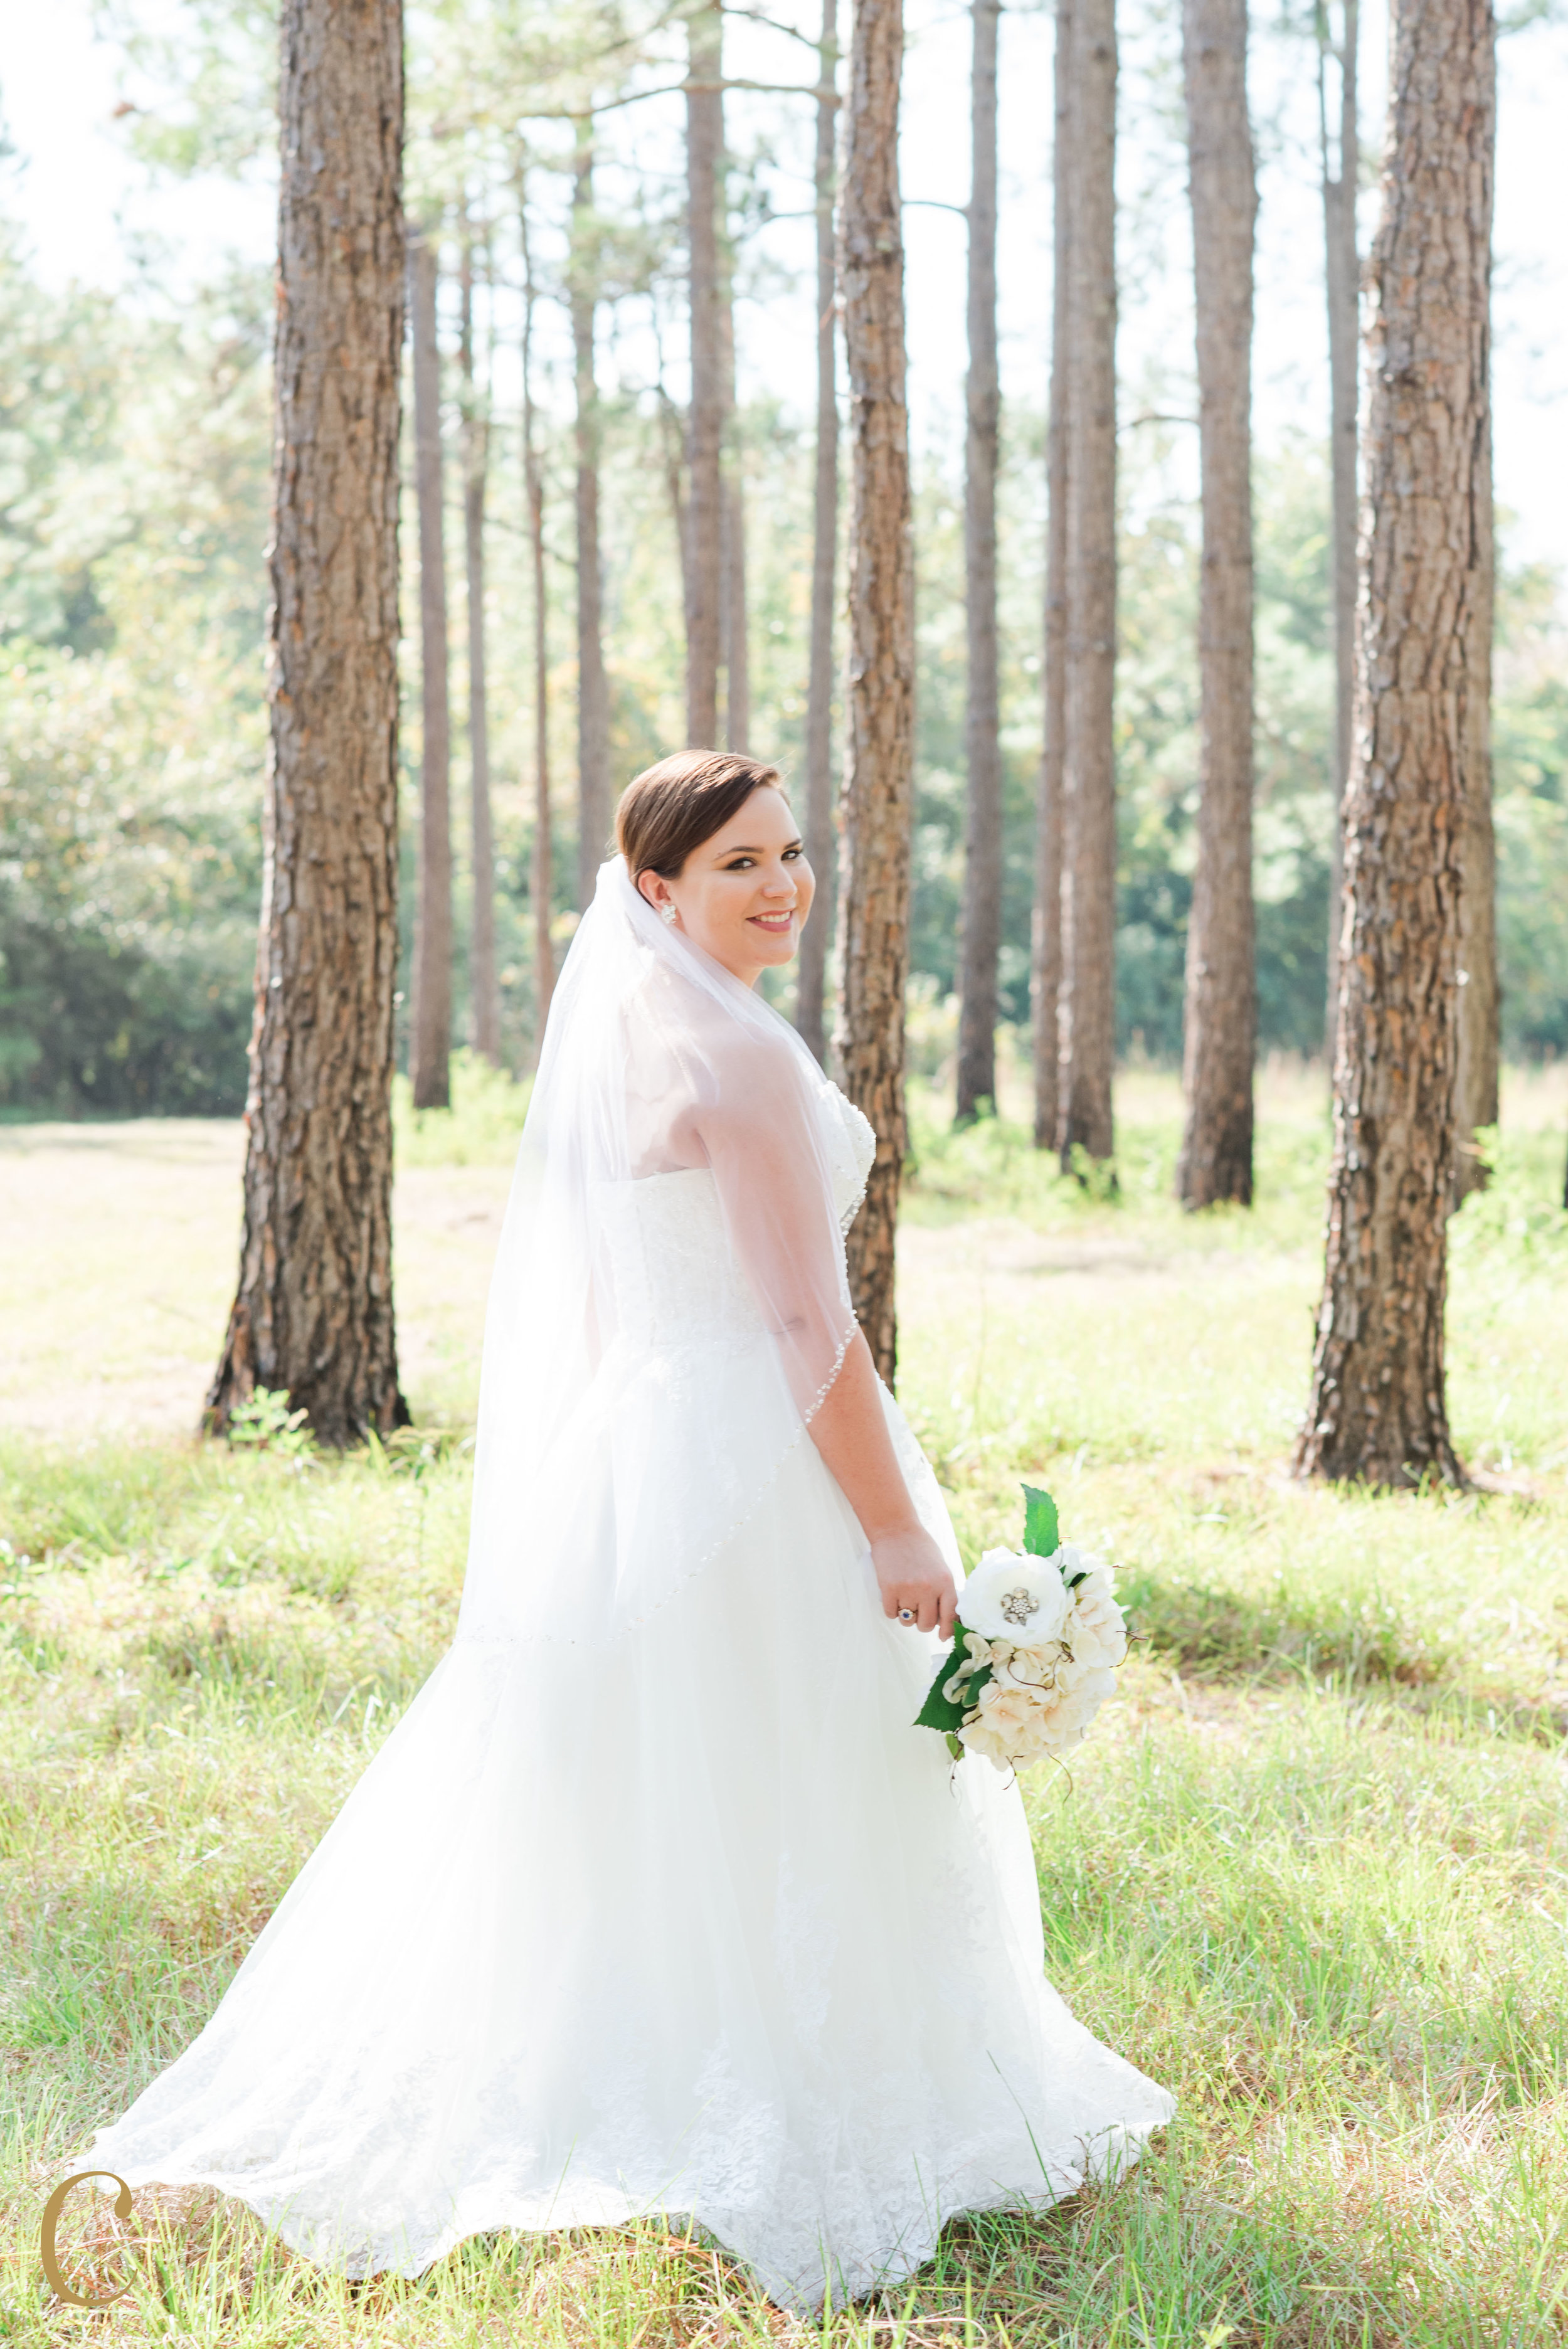 ©christineaustinphotography_jarred_hannah_wedding-4.jpg